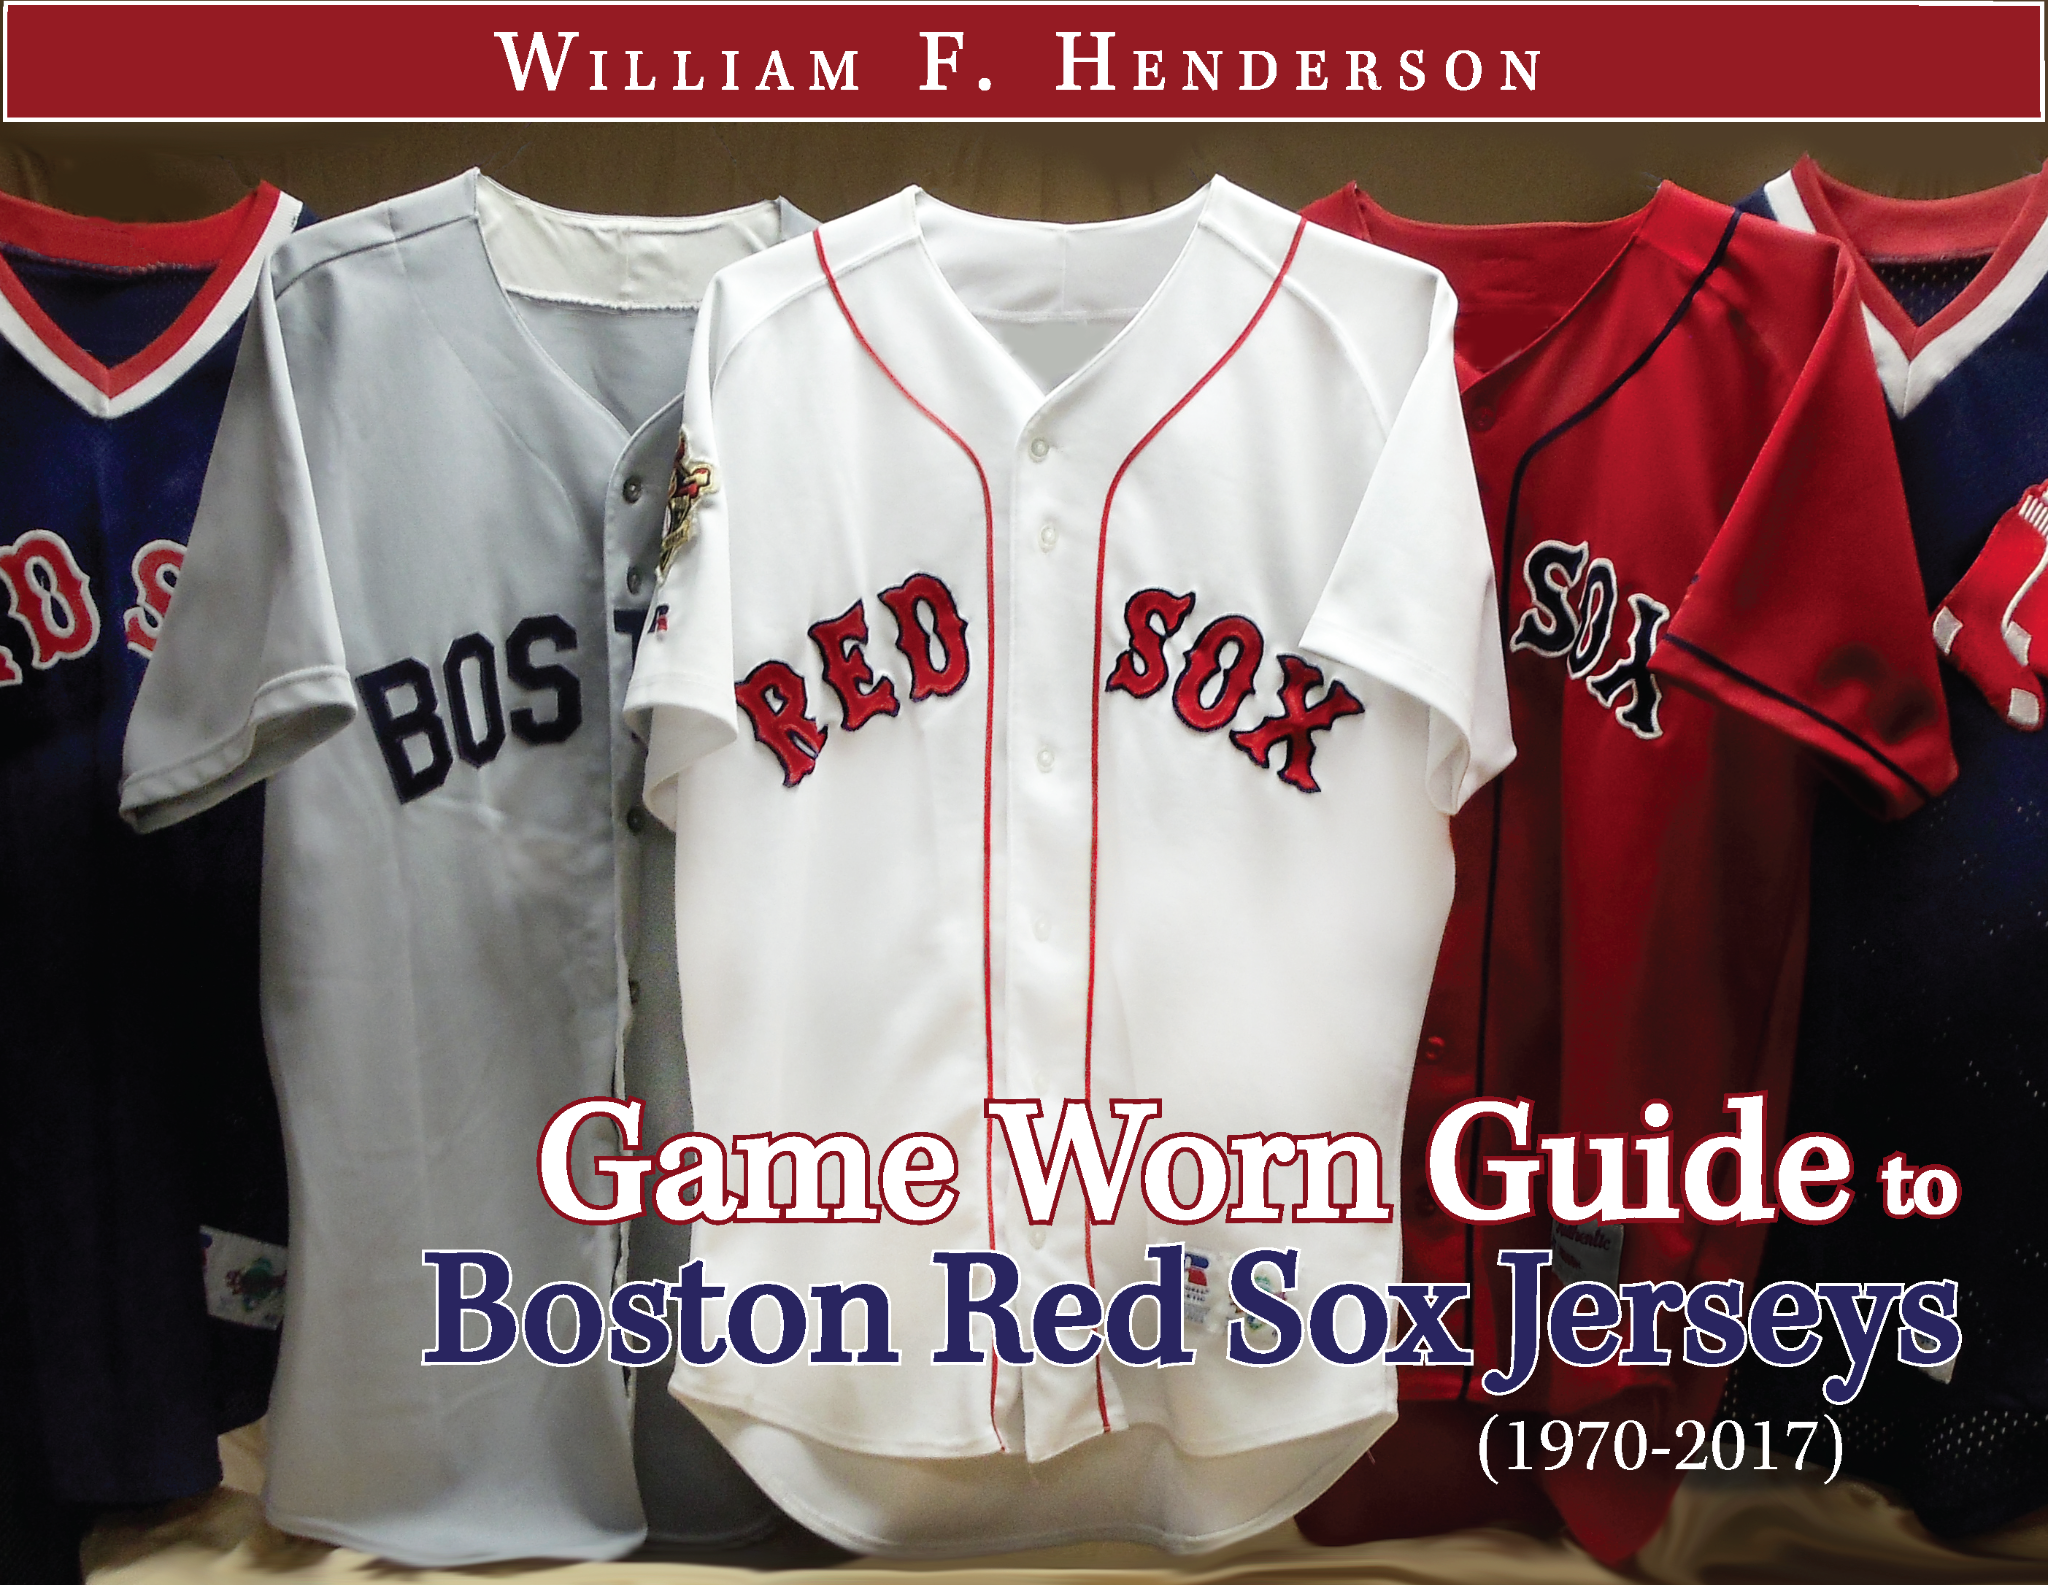 Game Worn Guide to Boston Red Sox Jerseys (1970-2017)